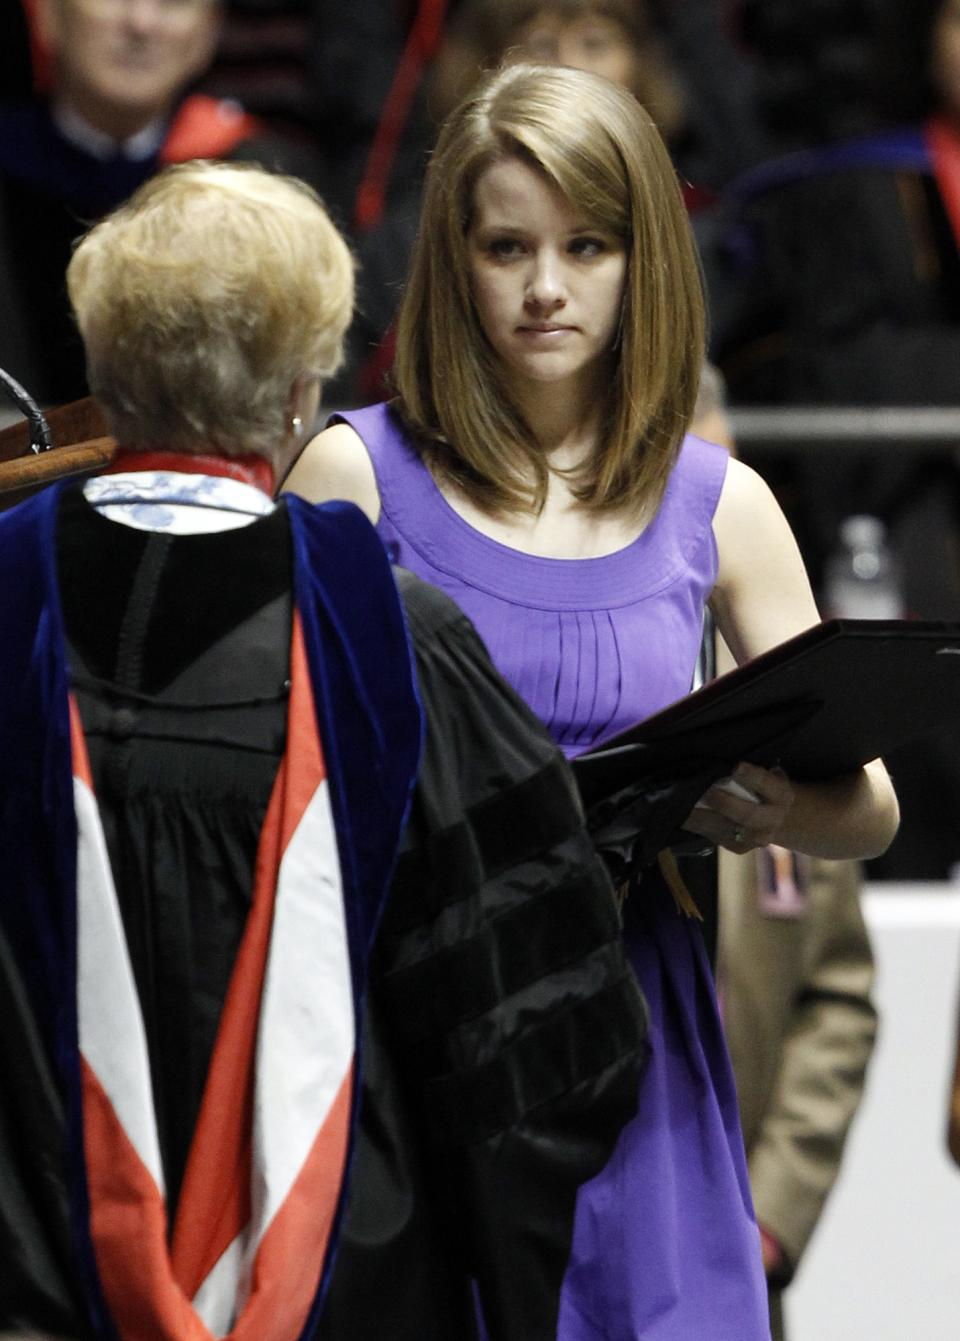 Michelle Downs Whatley accepts the degree from the University of Alabama on behalf of her sister Danielle Downs on Saturday, Aug. 6, 2011, in Tuscaloosa, Ala. Danielle lost her life when a tornado ripped through Tuscaloosa on April 27, 2011. (AP Photo/Butch Dill)